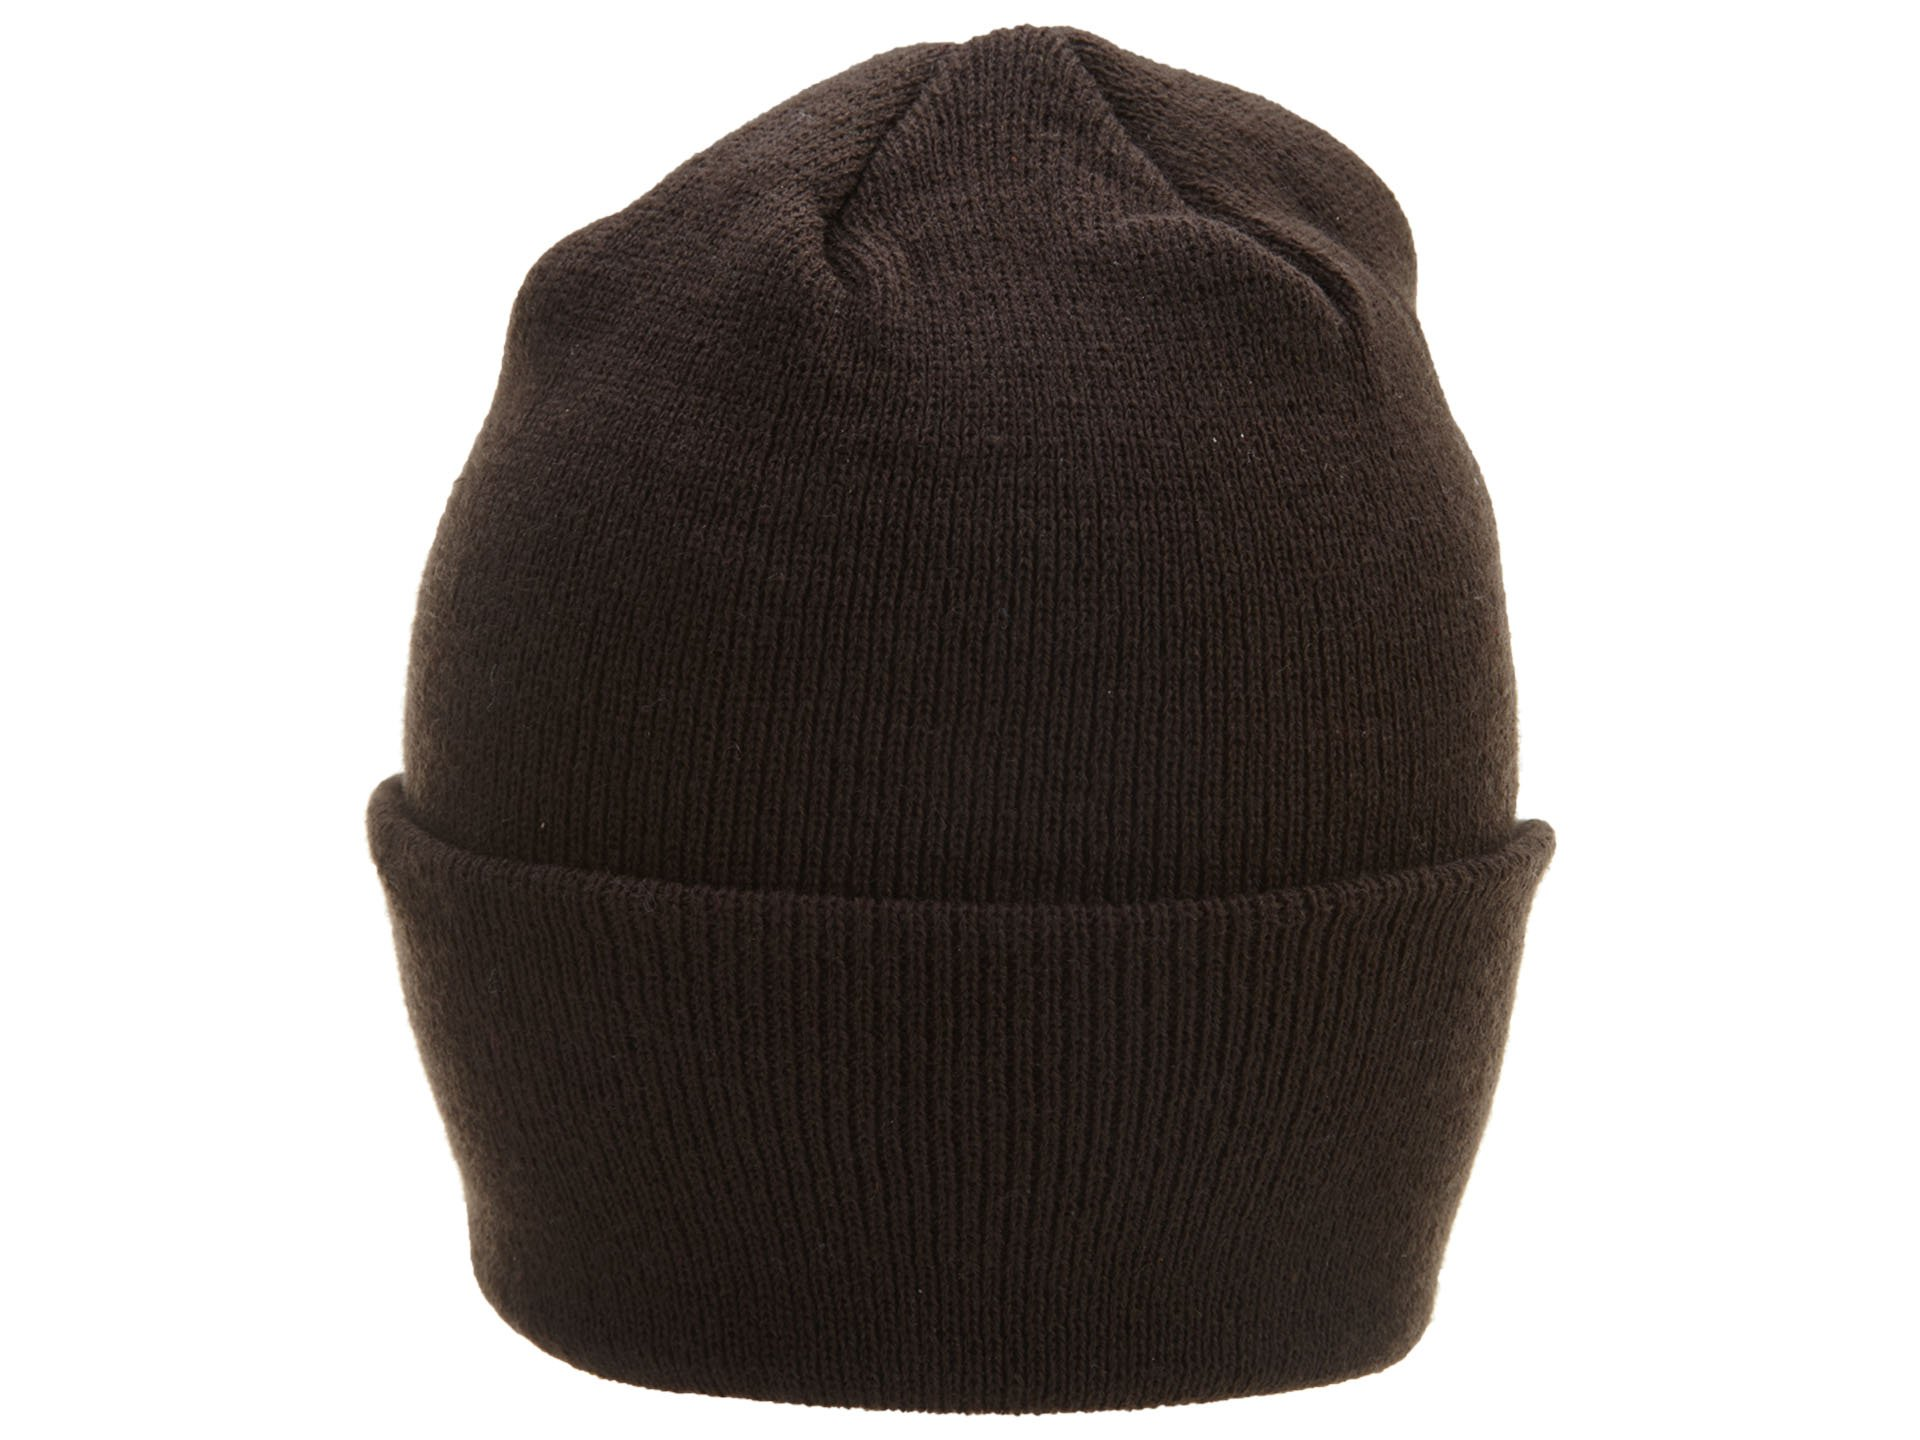 Cleveland Browns Knit Hat: Brown Stadium Cuffed Knit Cap by Reebok (Image #2)